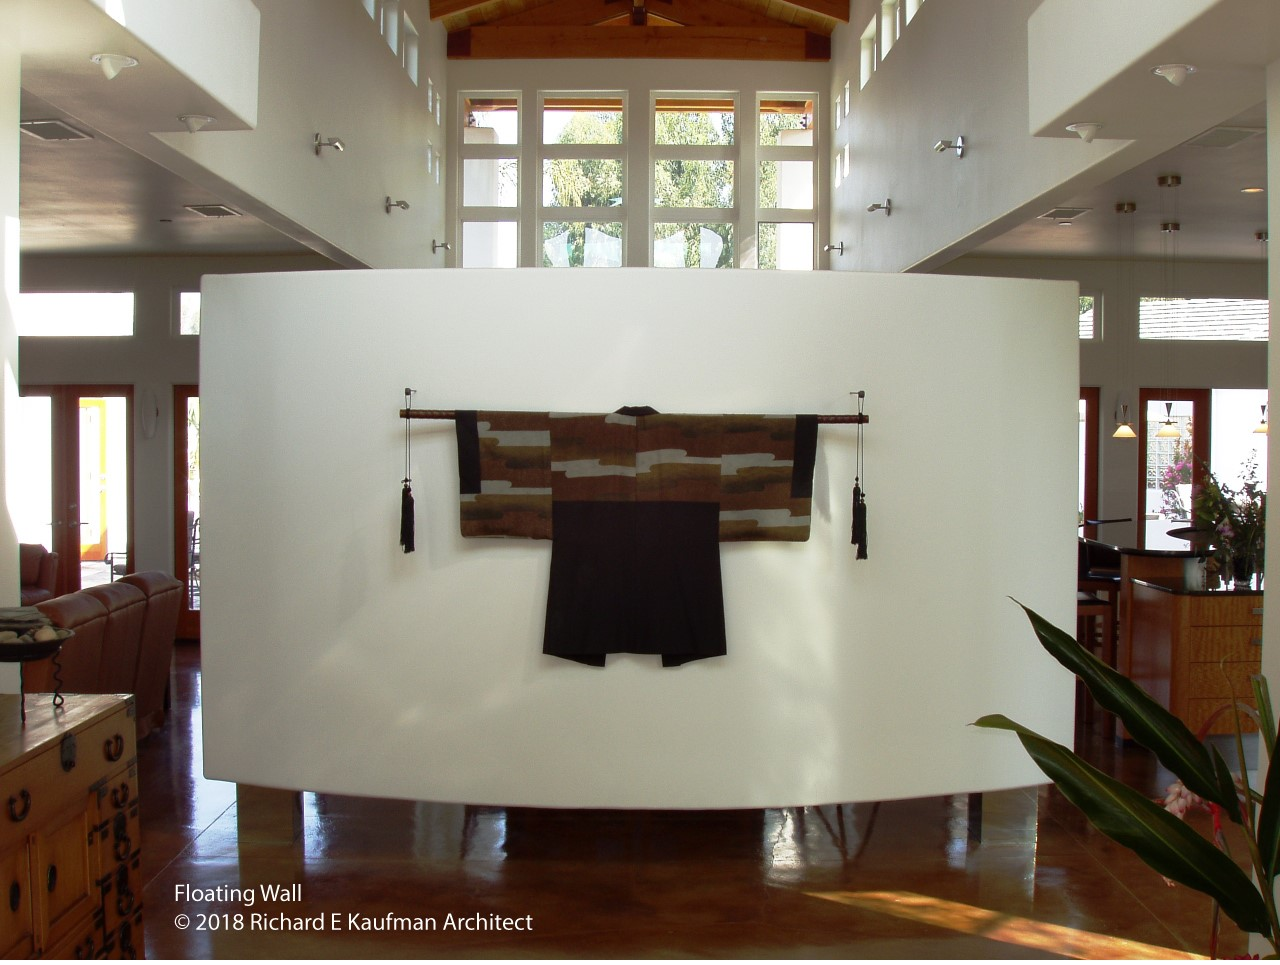 Floating Wall as seen from the Foyer. The Great Room including the Dining Room table is on the other side of the wall.